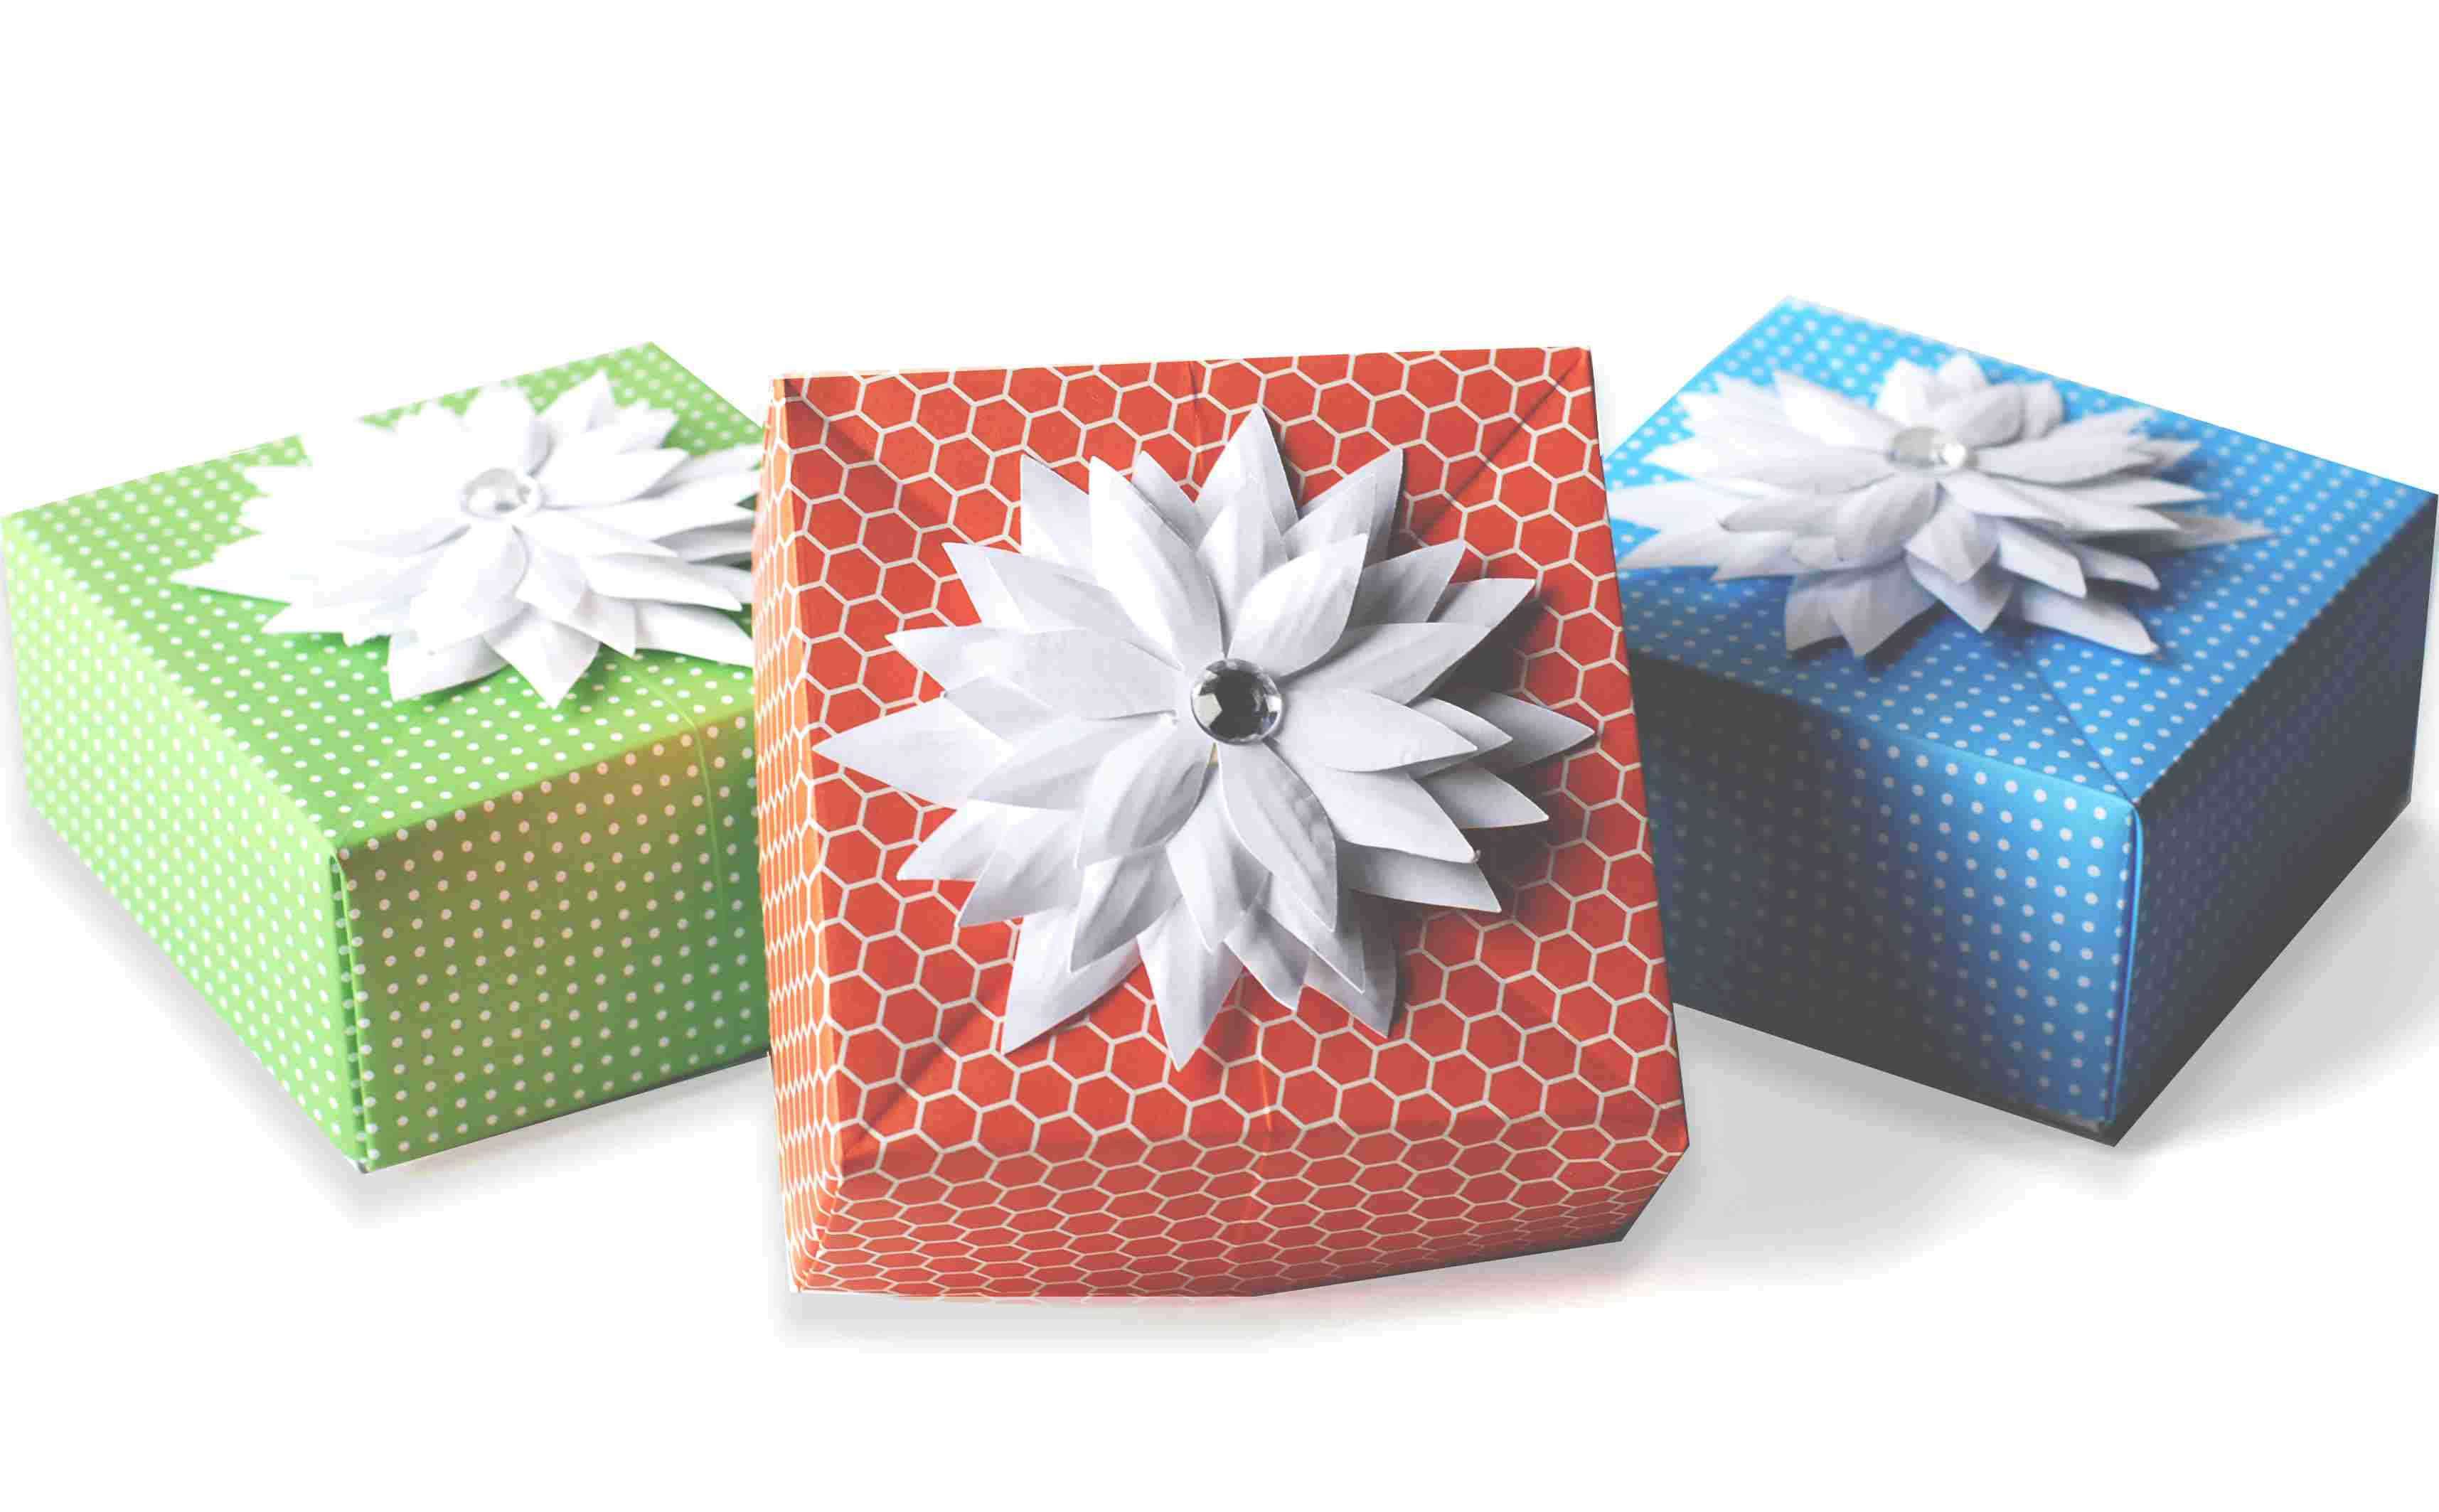 Tomoko Fuse's Origami Boxes: Beautiful Paper Gift Boxes from ... | 2127x3430